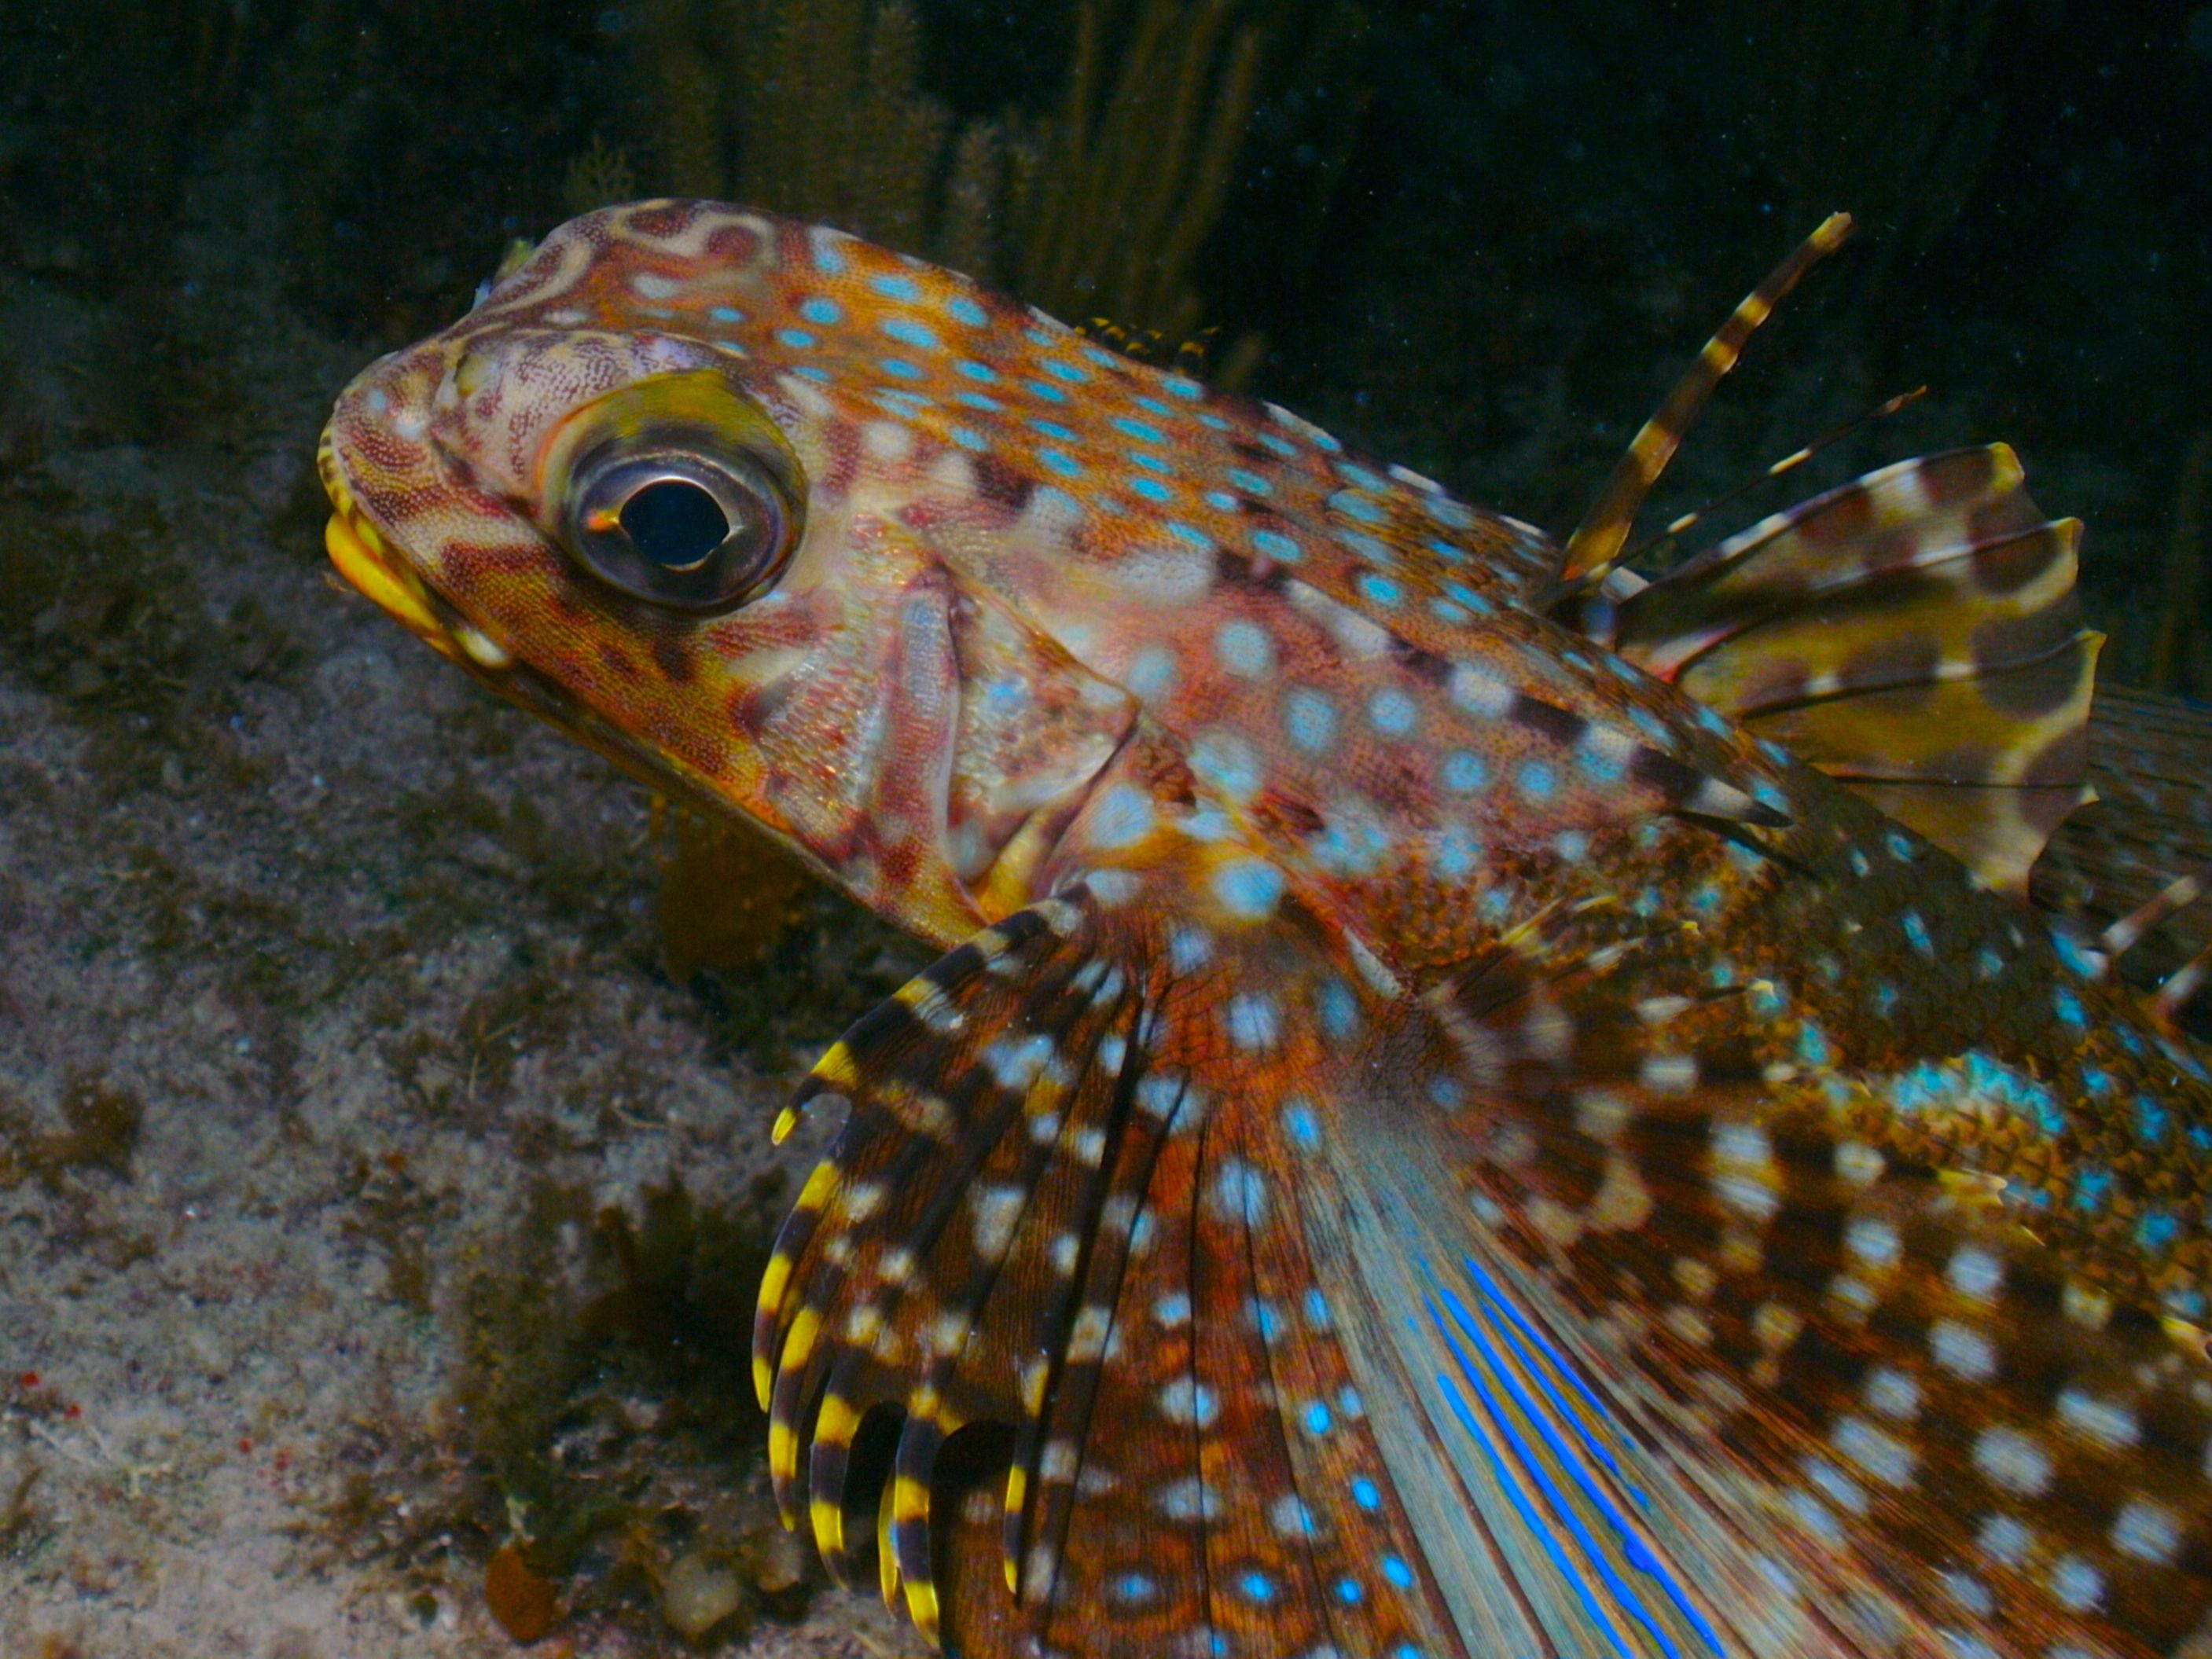 Flying Gurnard, Grand Cayman.  Taken by Terri Bodle with a SeaLife DC1200 camera.